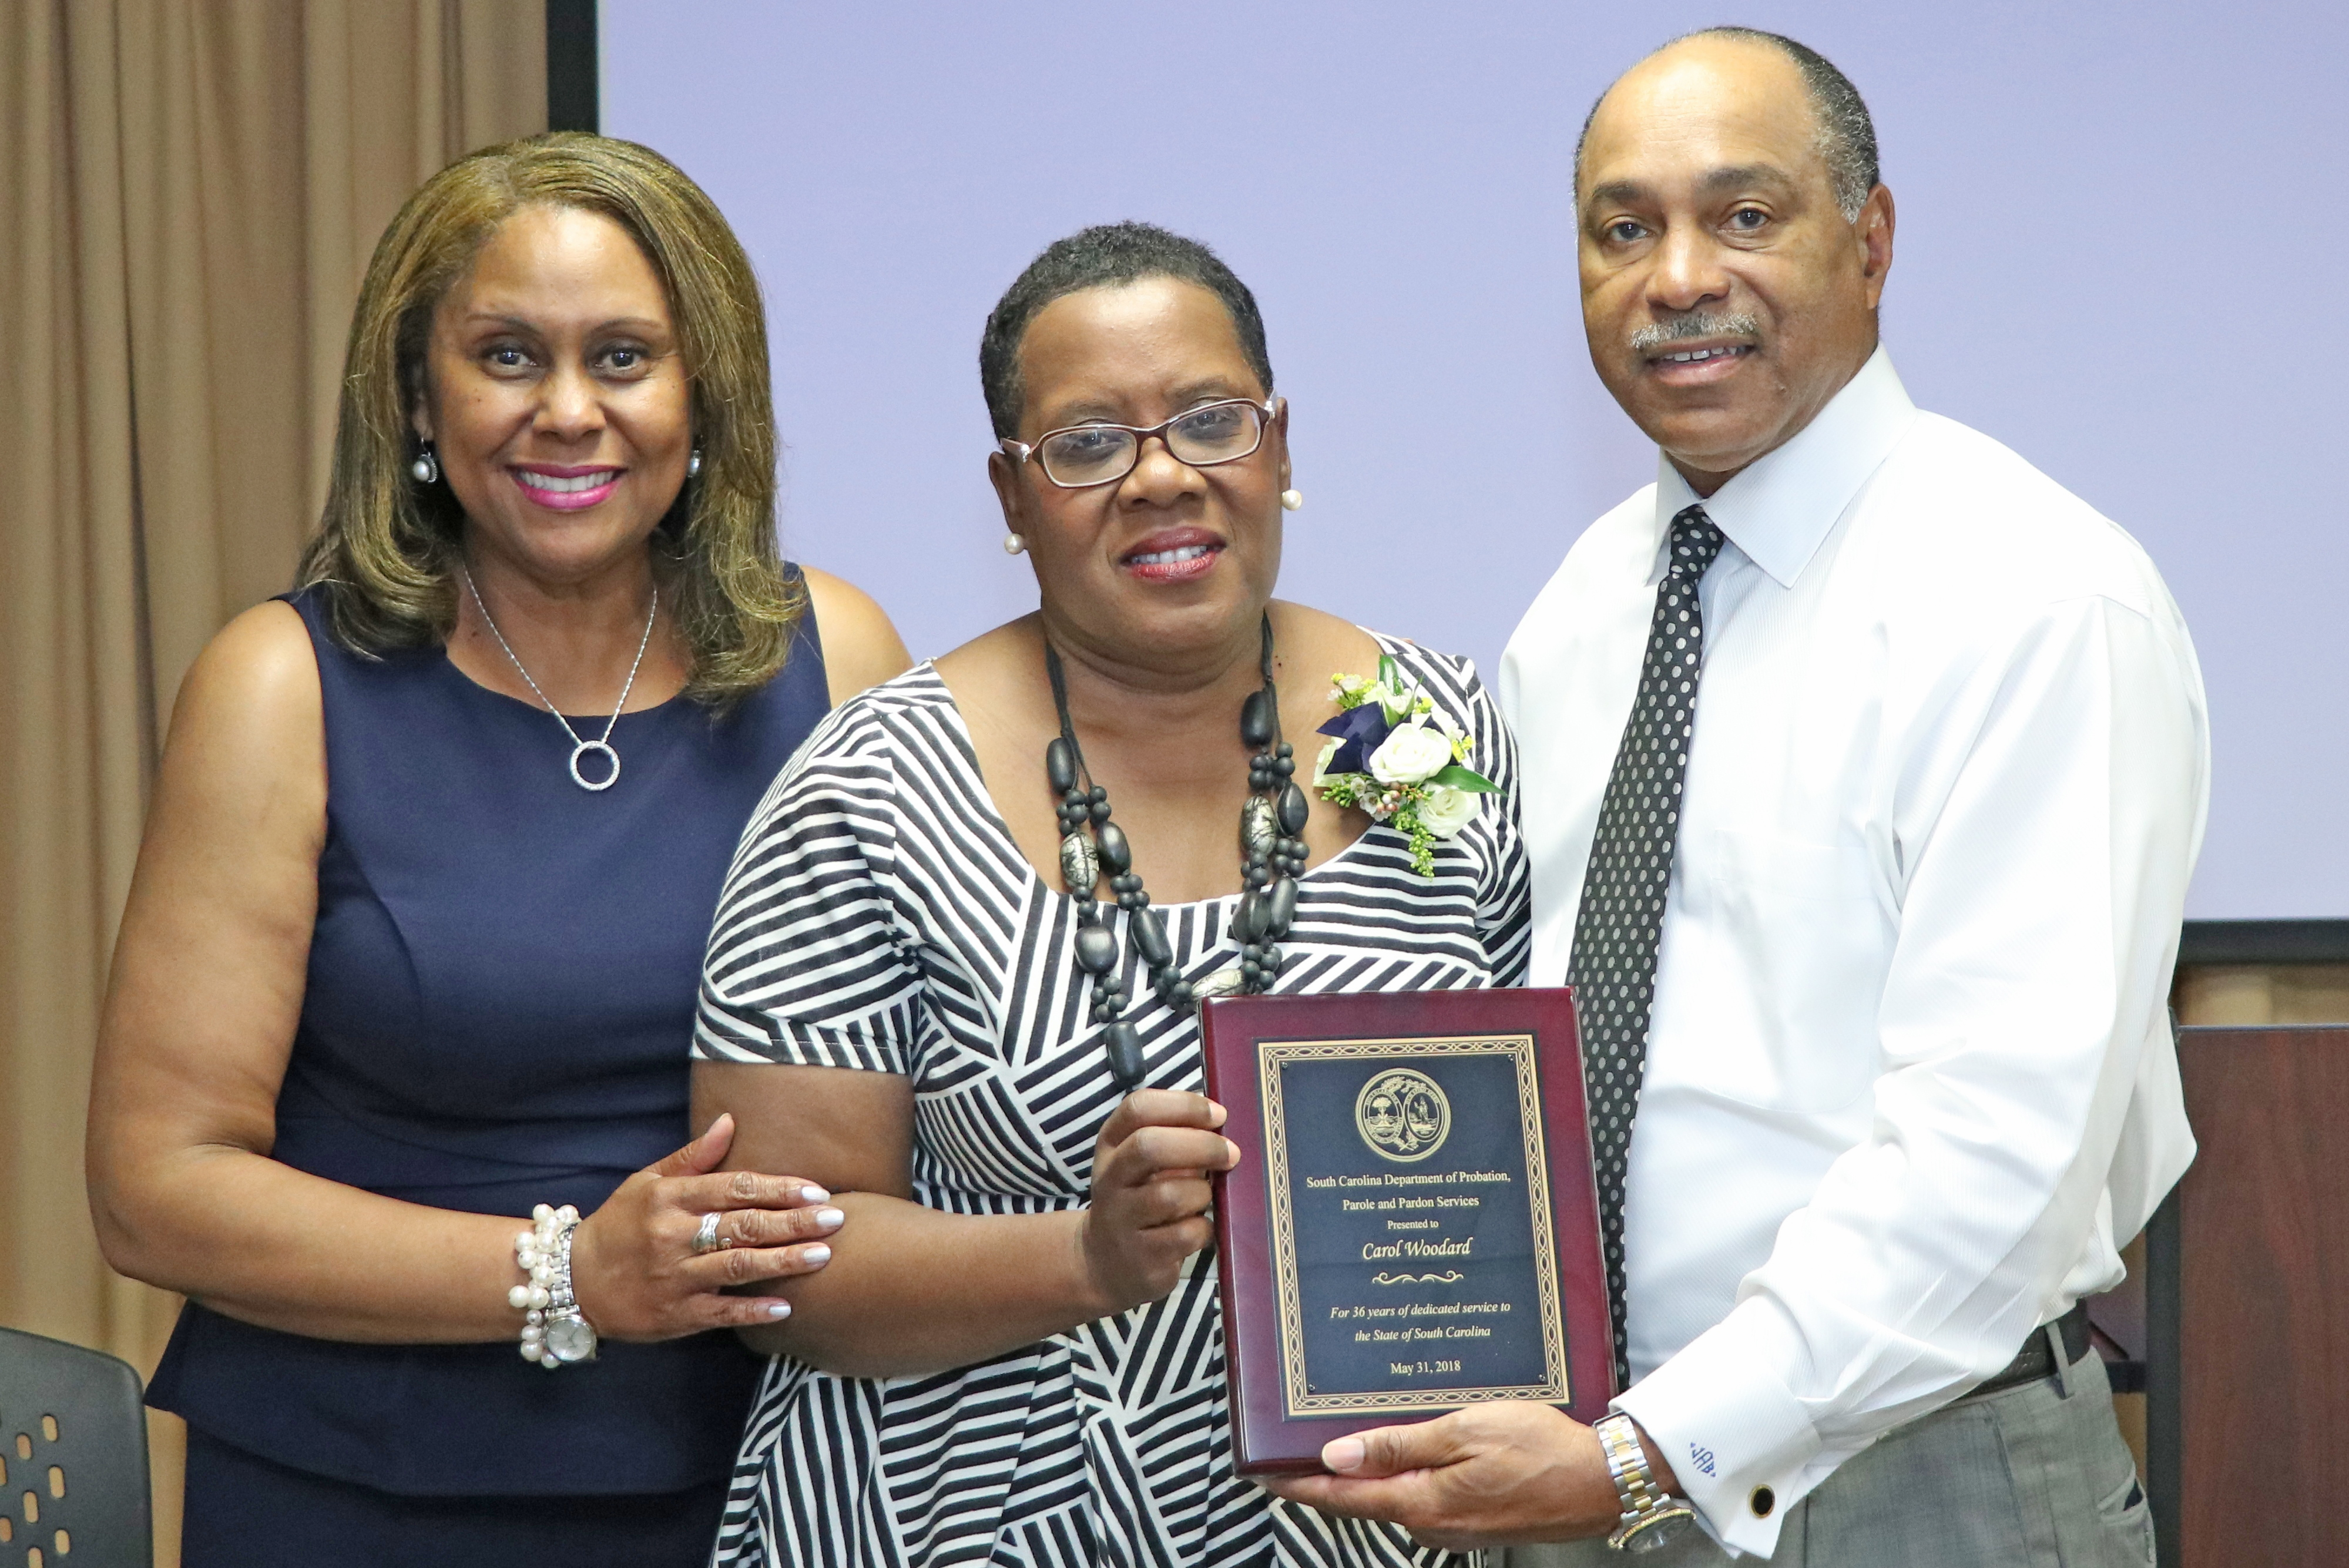 Woodard retires after 36 years | The Independent Voice of